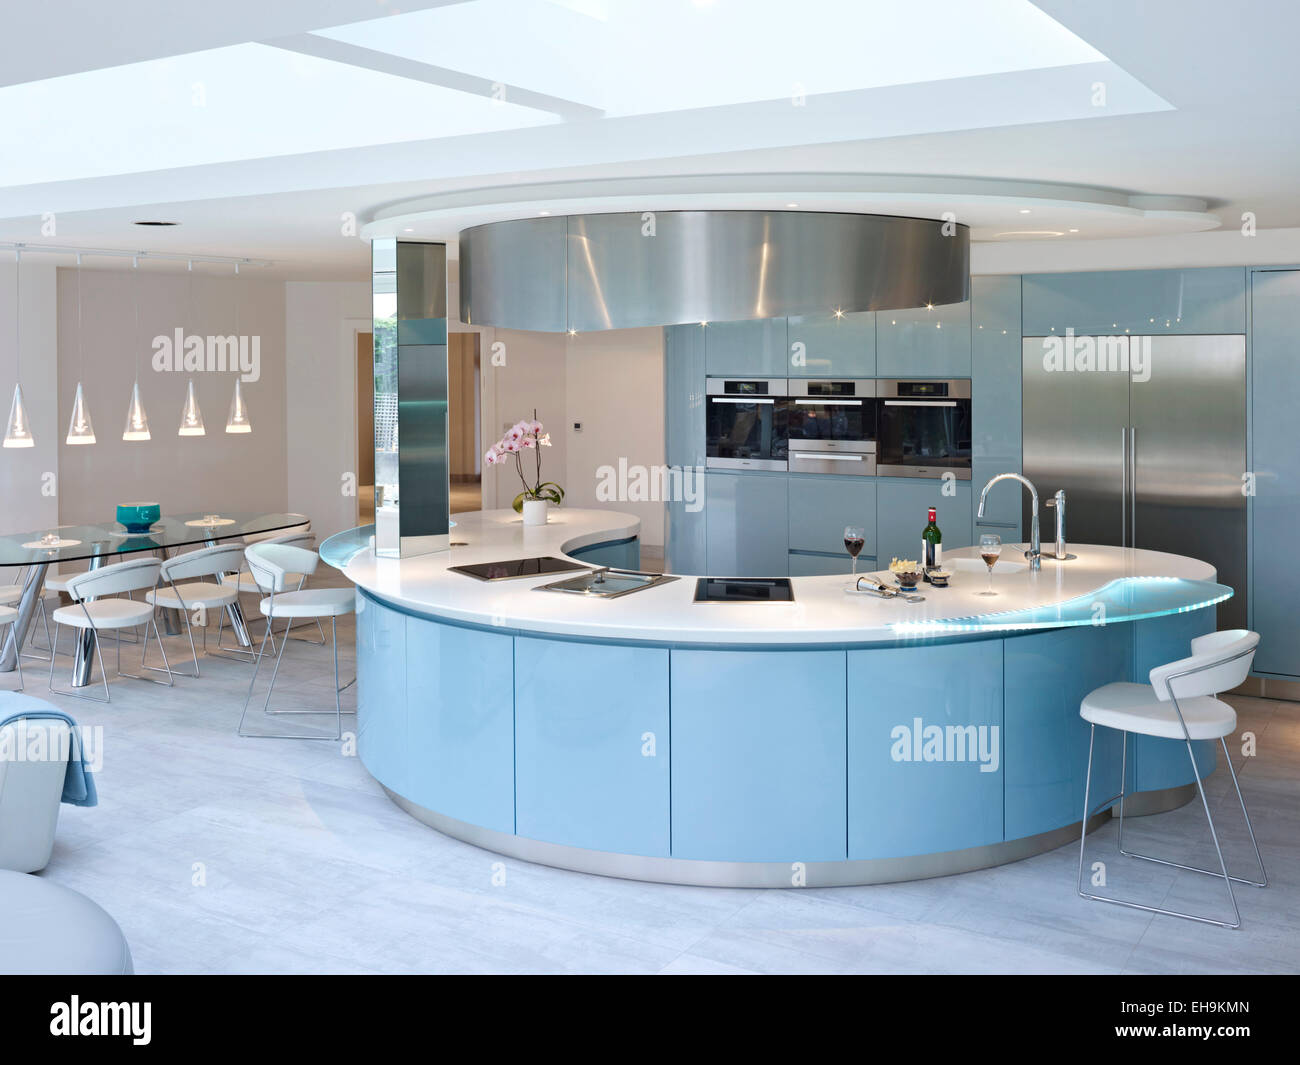 Modern Curved Kitchen Island kitchen curved island stock photos & kitchen curved island stock